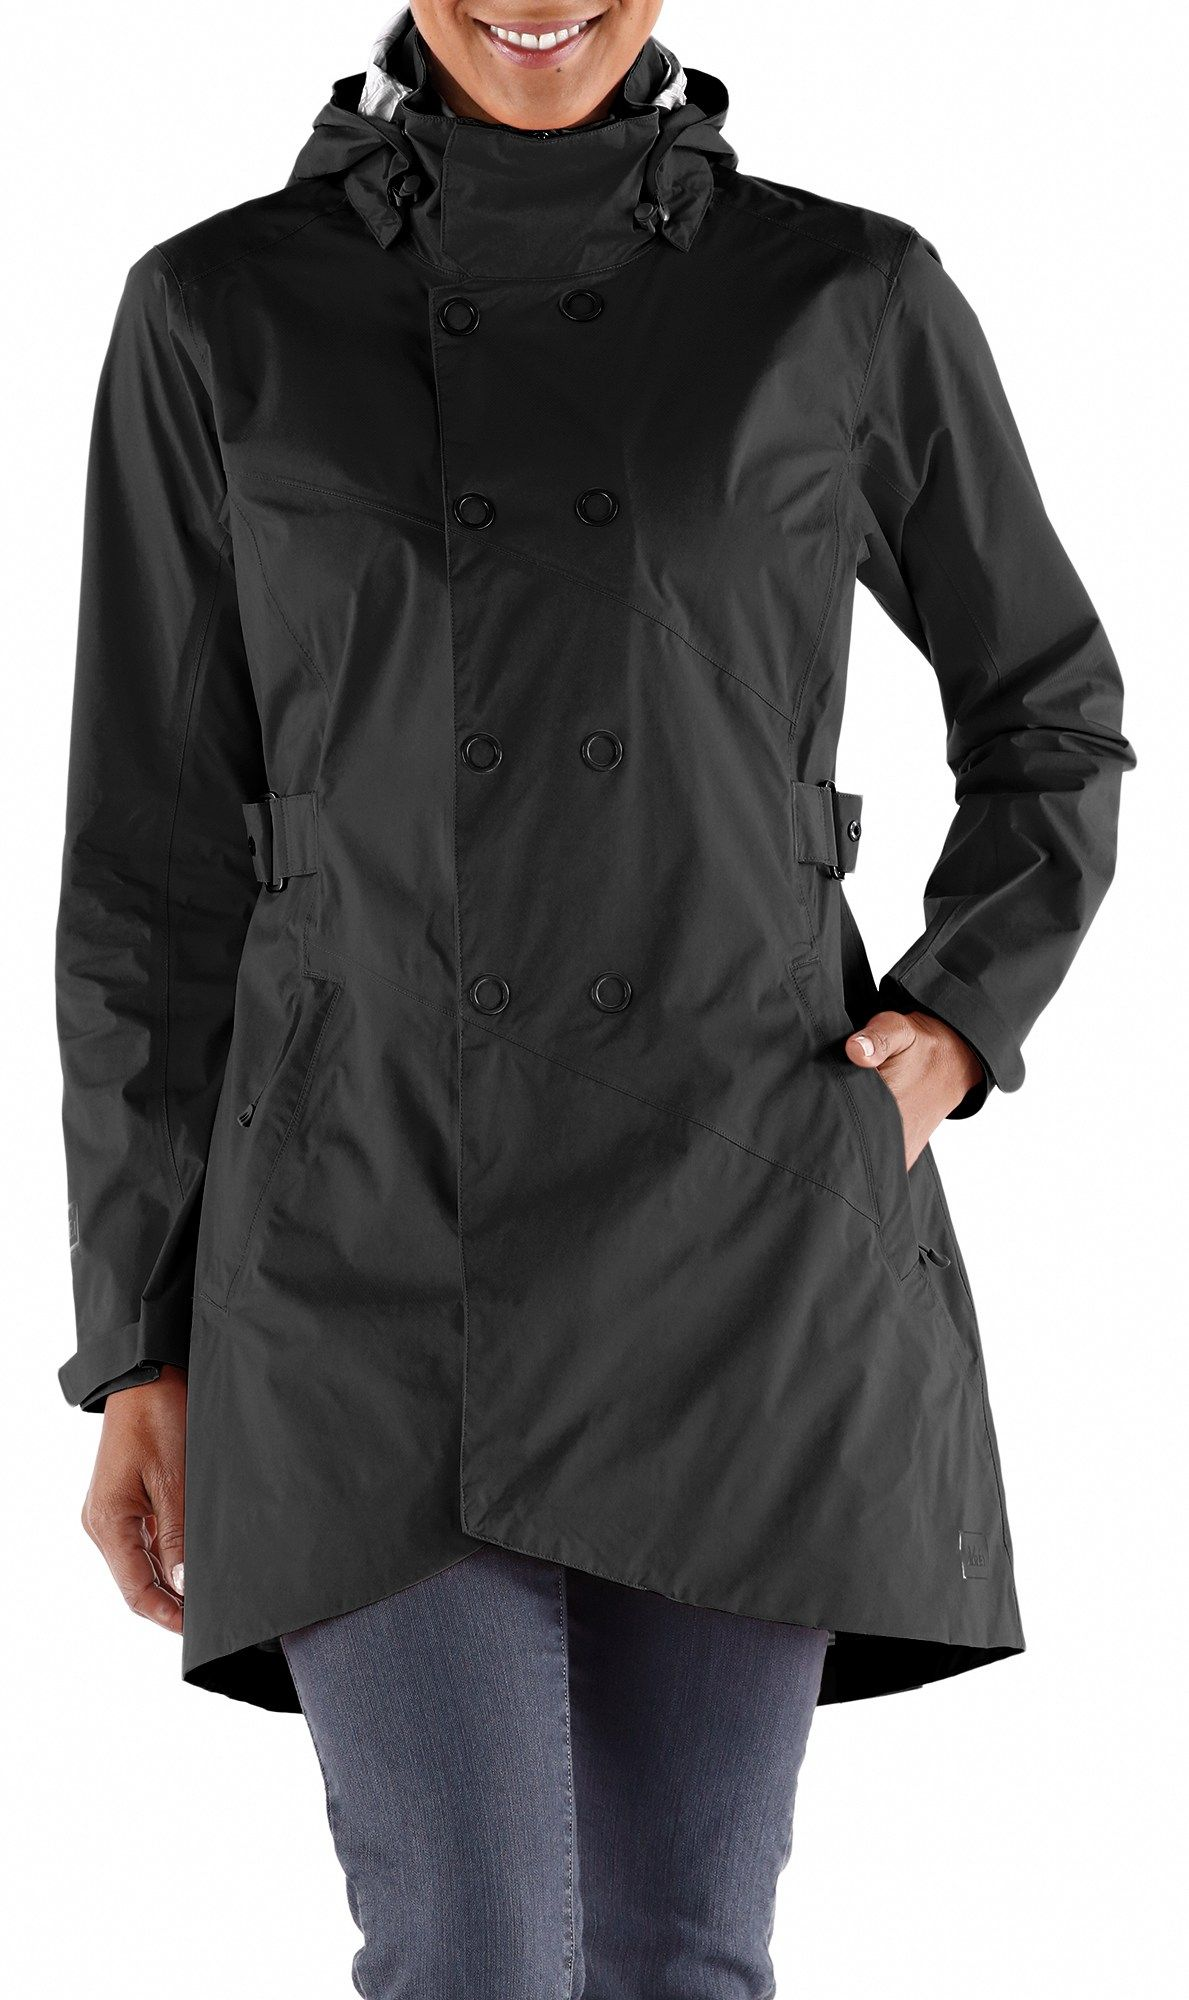 Co-op Kyoto Trench Rain Jacket - Women's | REI Co-op in ...